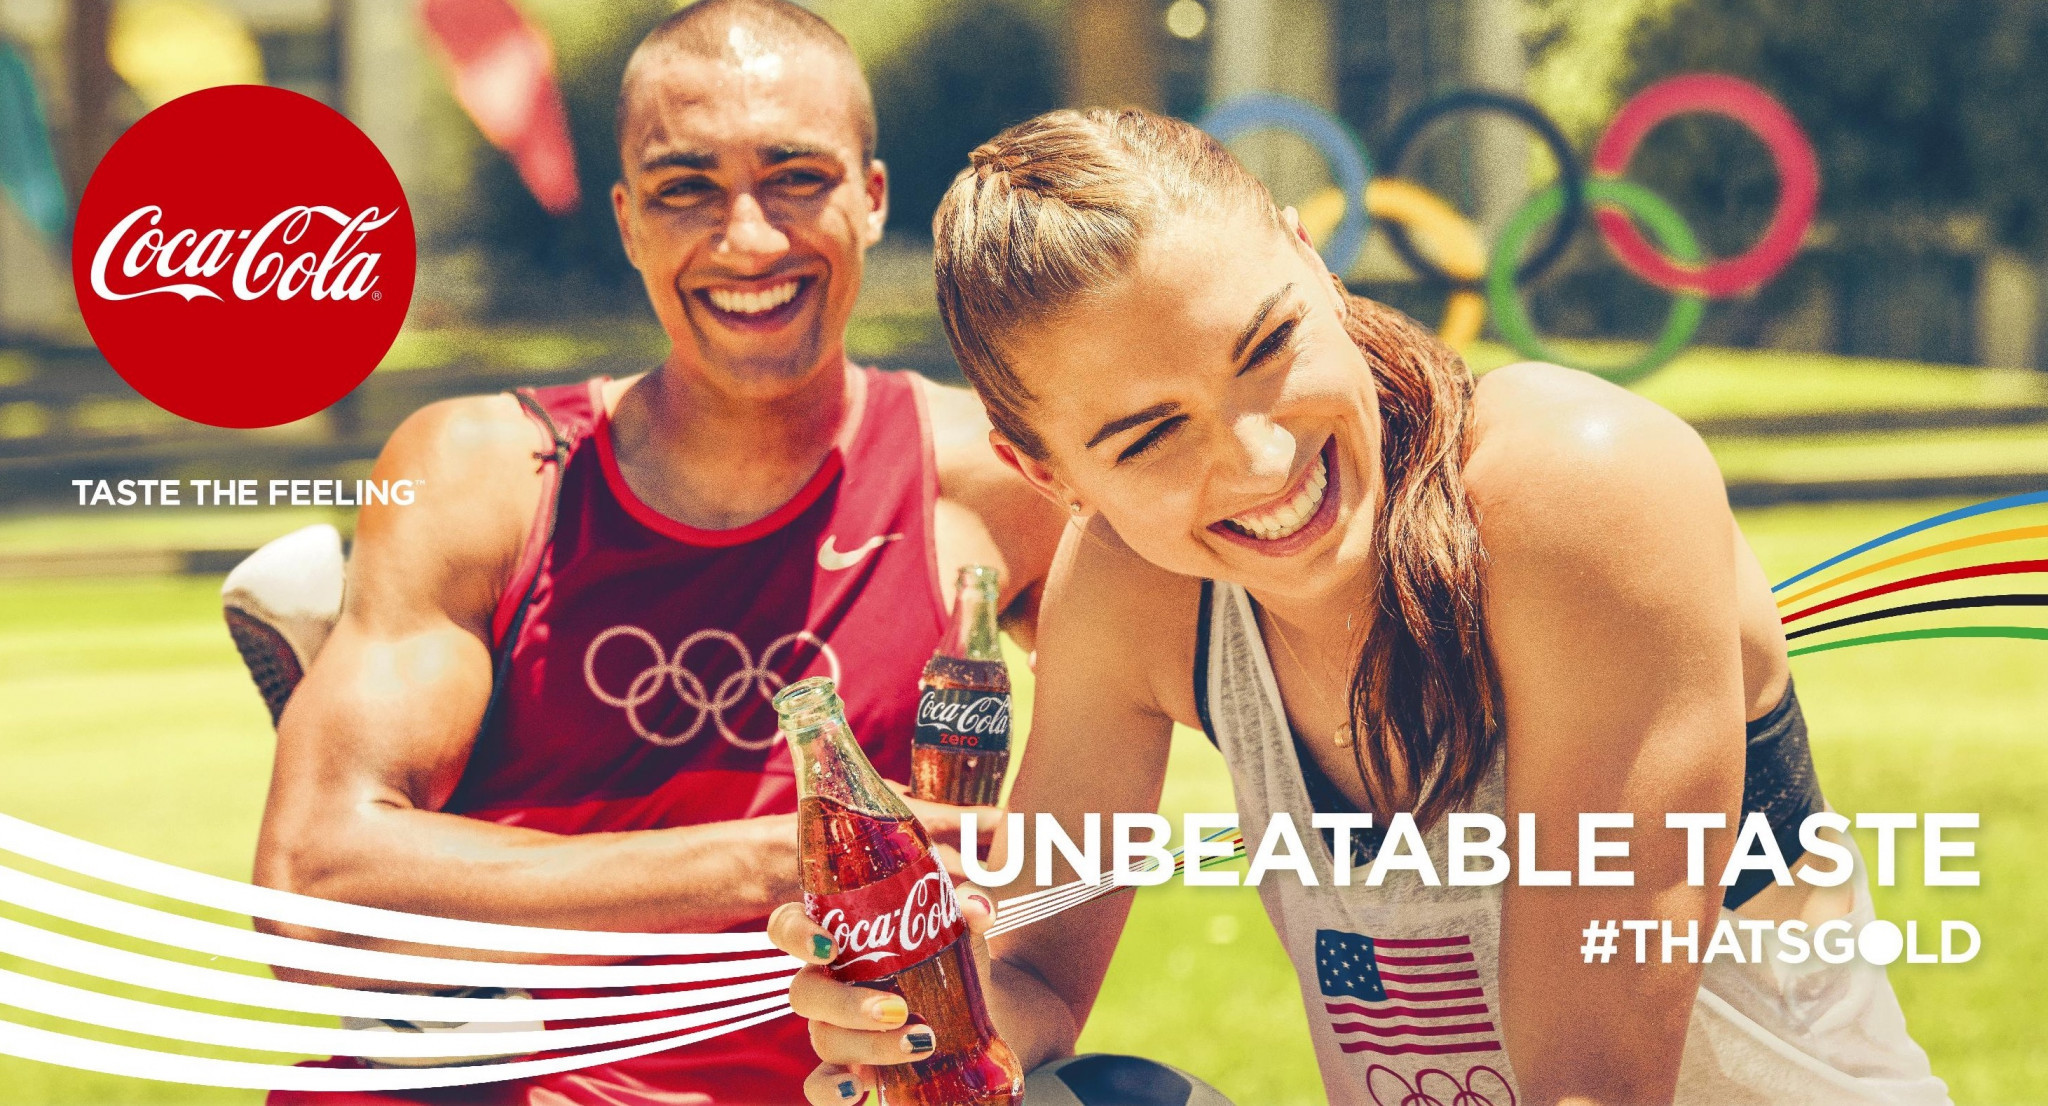 There is a danger that the Olympic Movement could harm its reputation even further if it is linked too closely to major international companies ©Coca-Cola